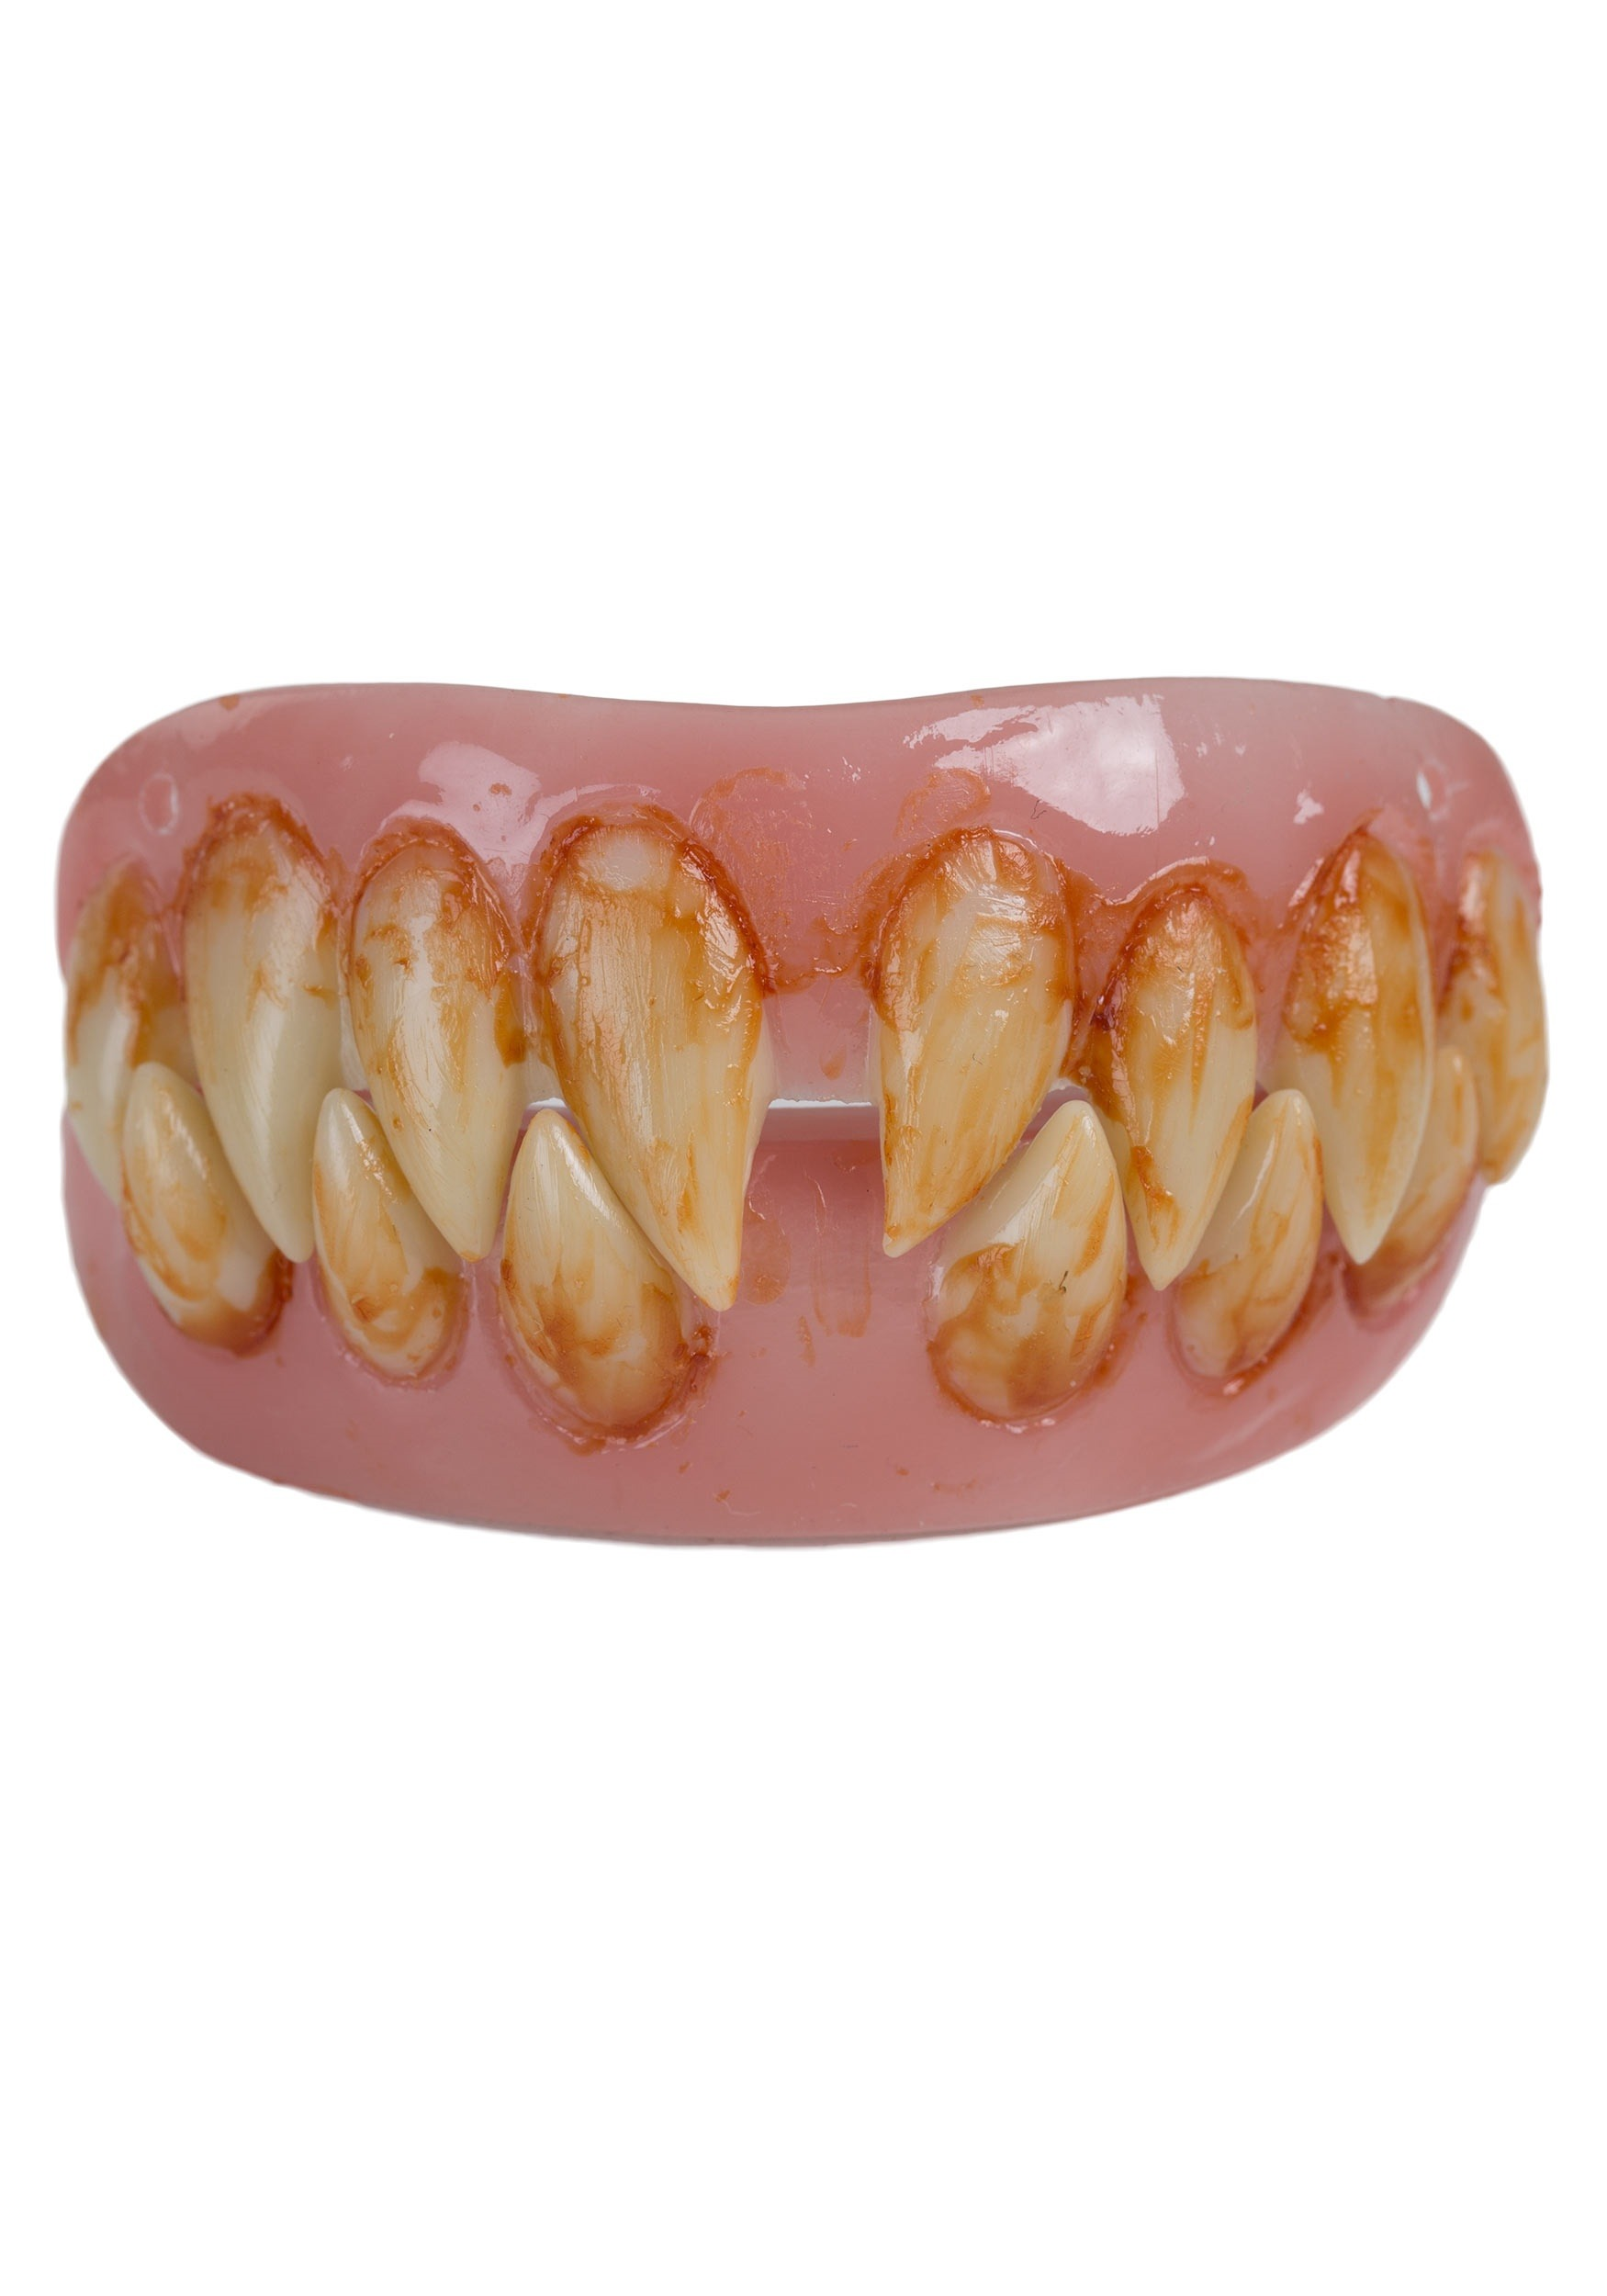 Official Pennywise Teeth from Stephen King's IT BI12225FN